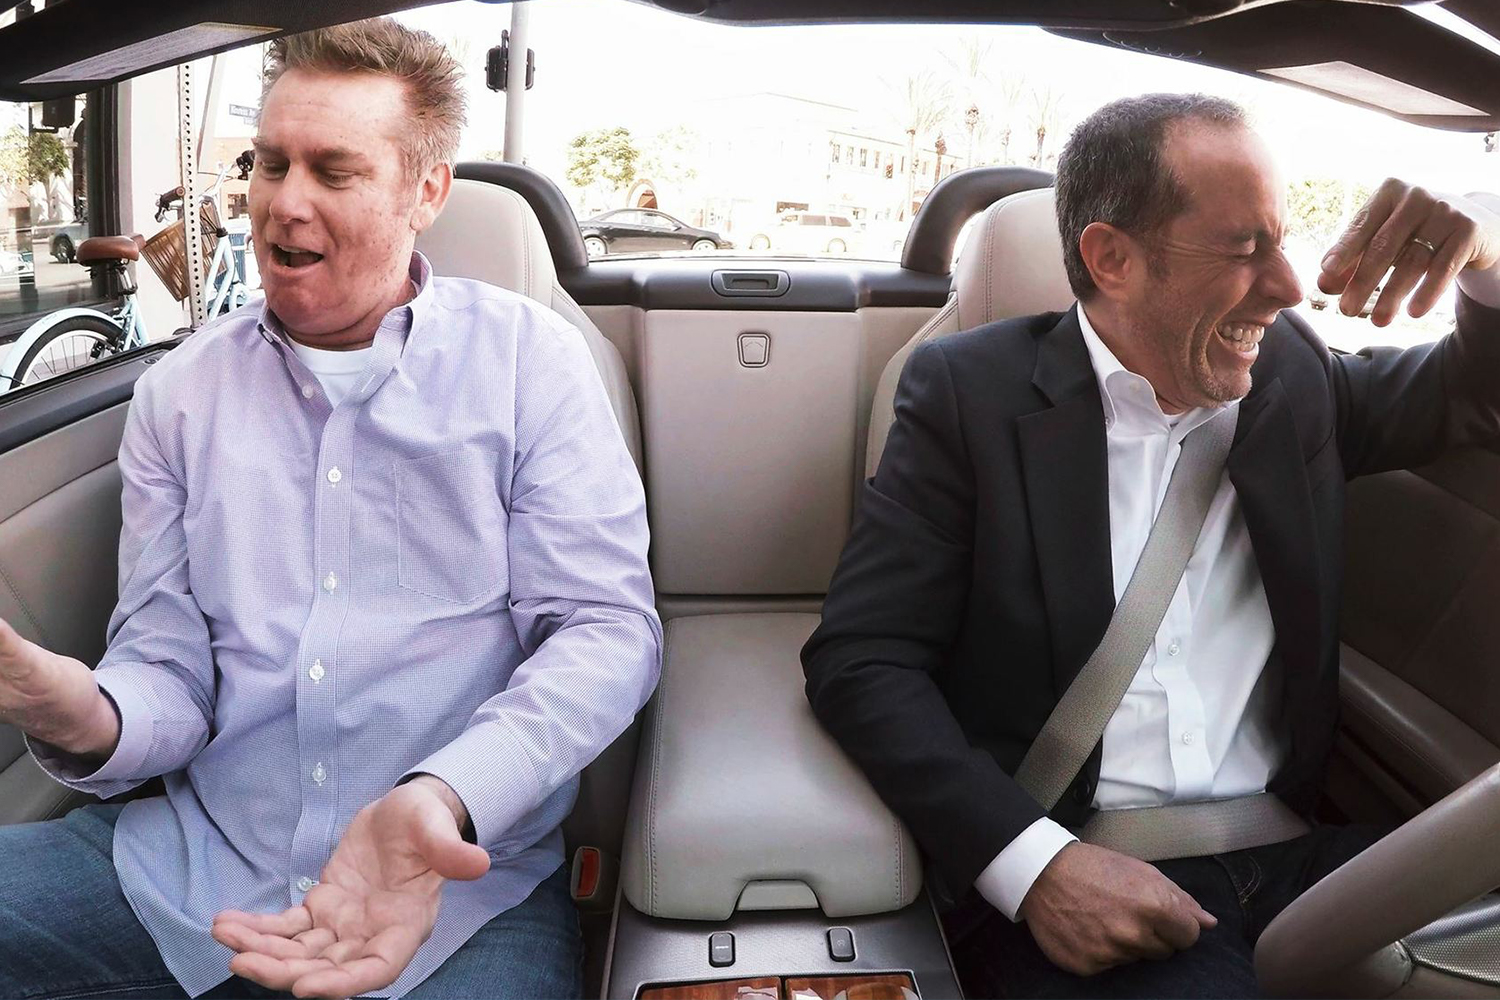 Comedians in Cars Getting Coffee 2005 Cadillac XLR